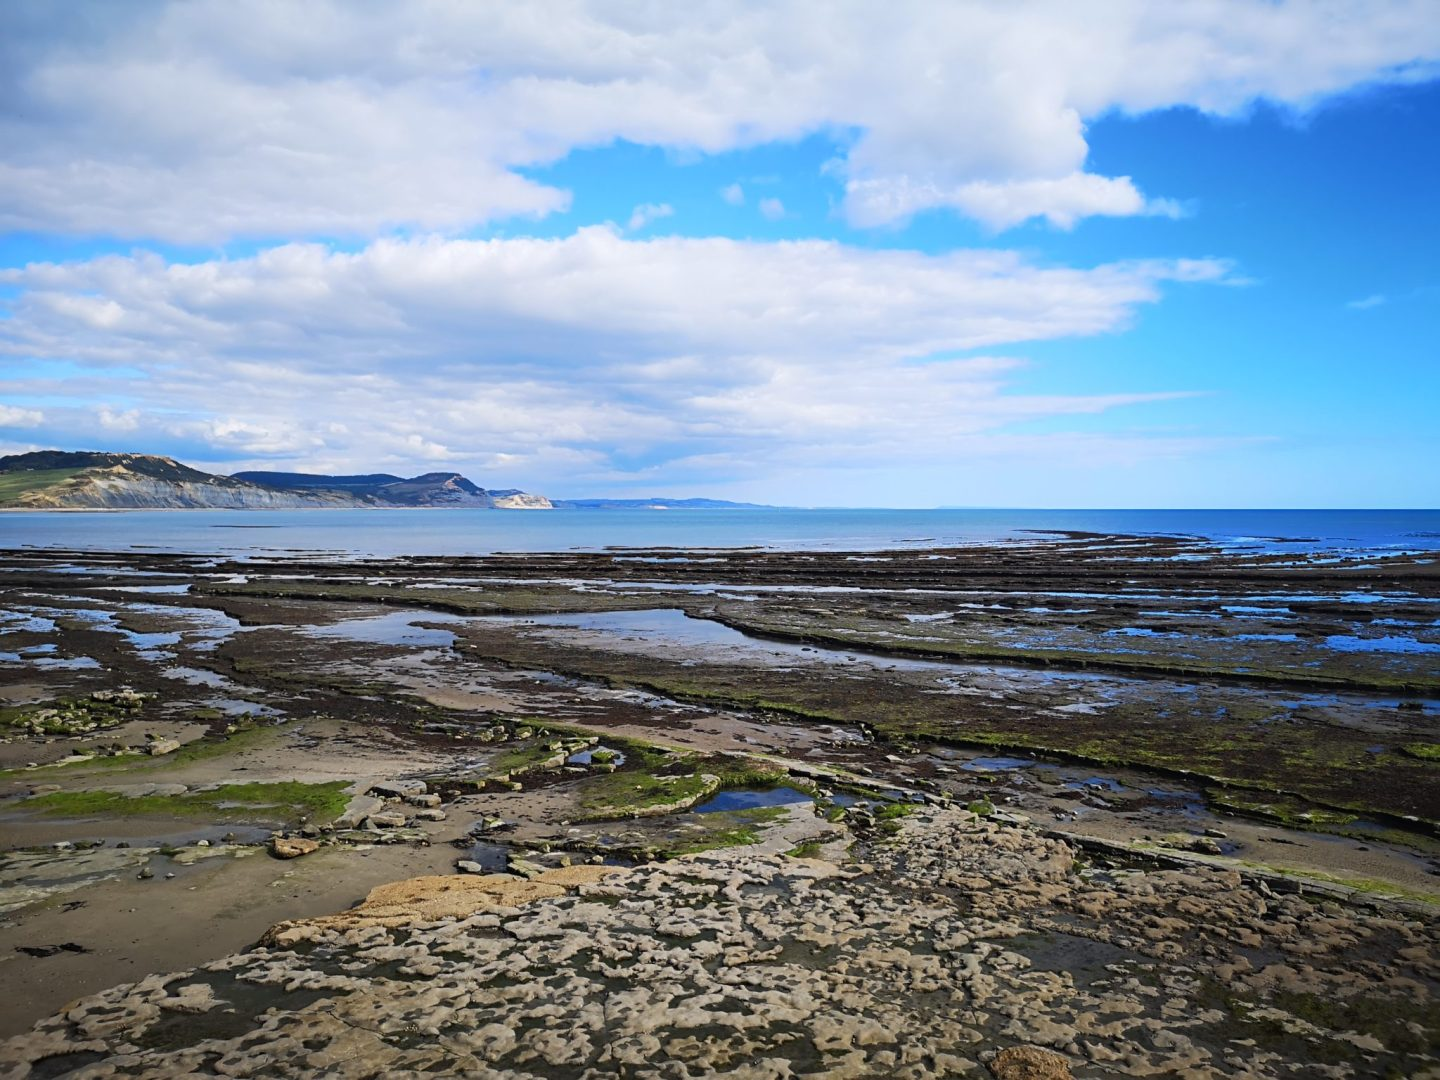 Low tide at Lyme Regis, Dorset, England